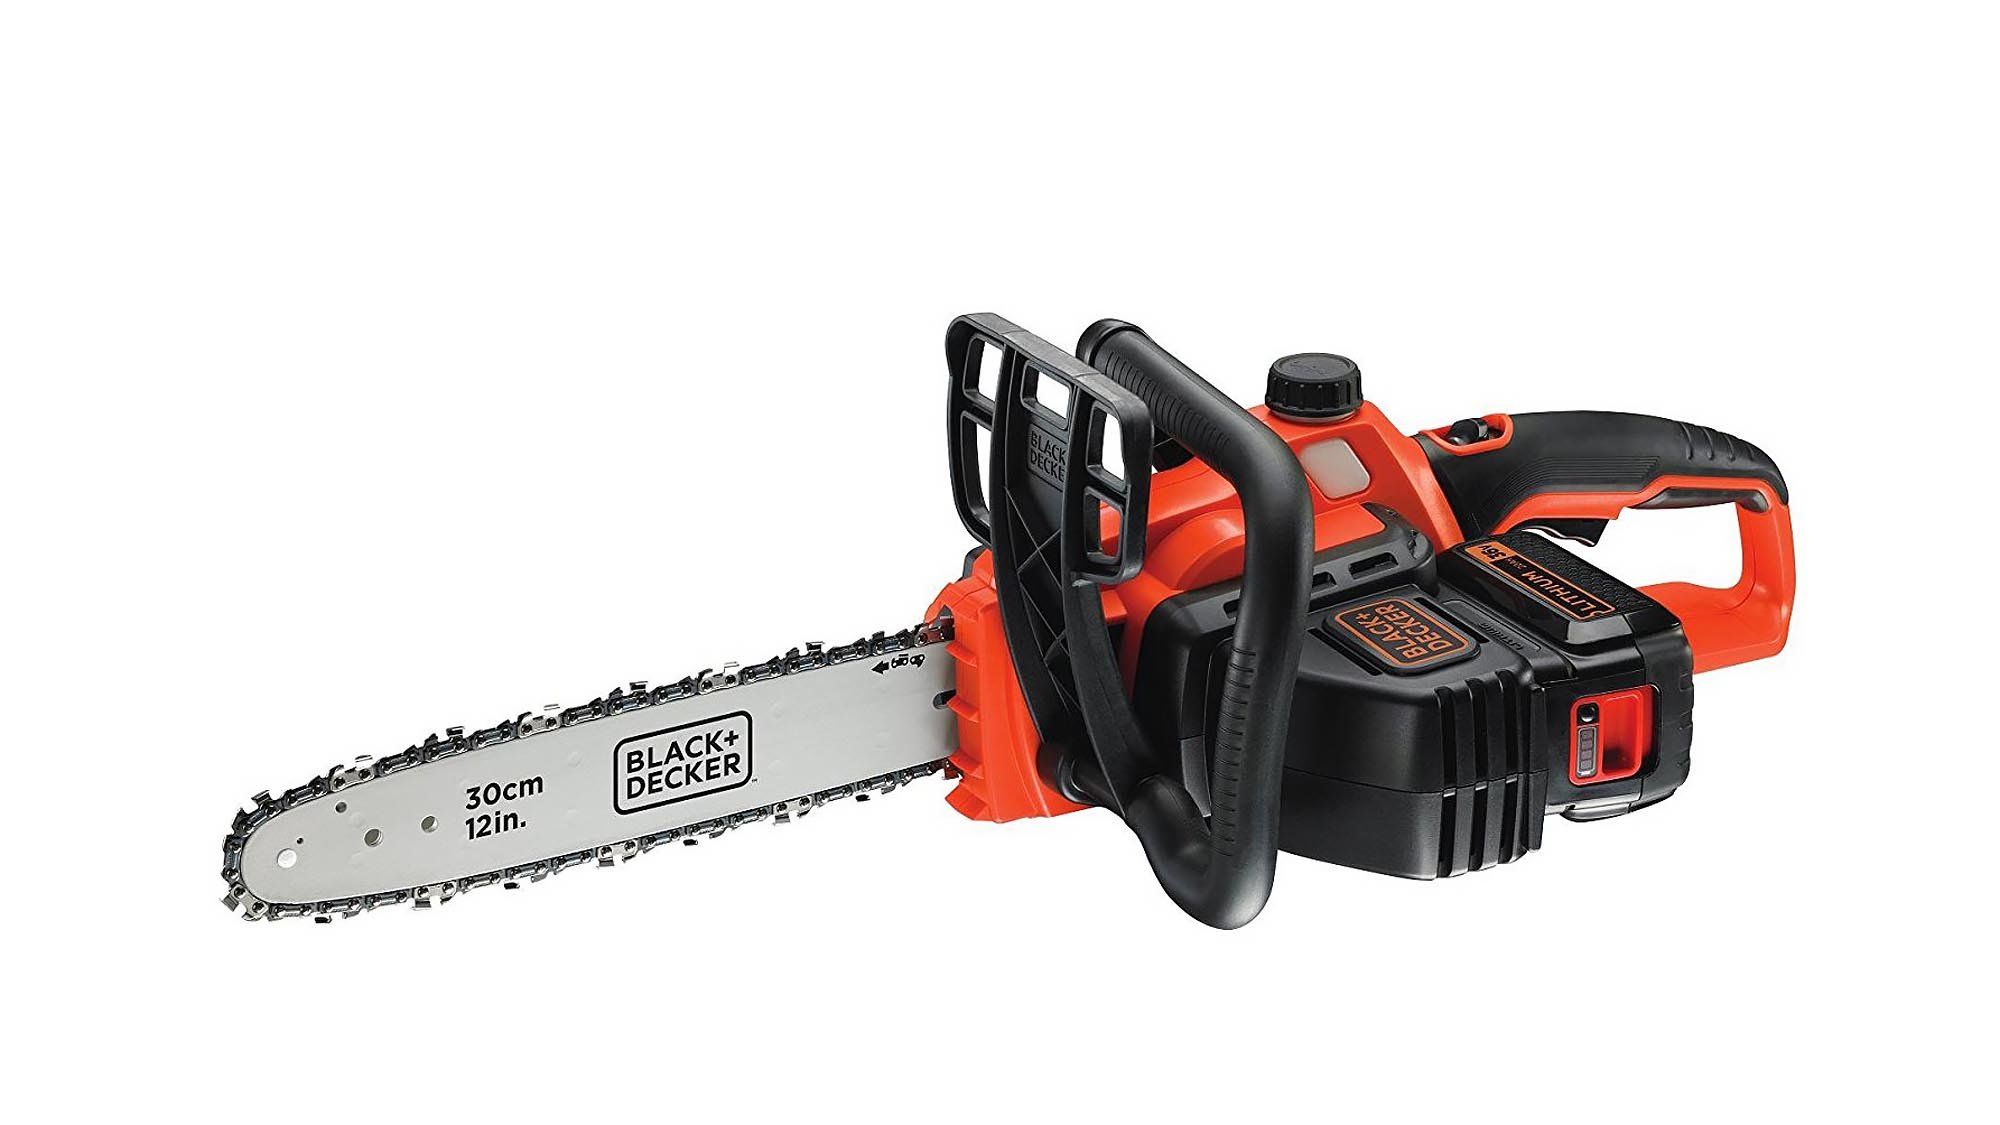 Best chainsaws make light work of heavy pruning jobs from 50 the battery powered gkc3630l20 is an exceptionally handy 30cm bar chainsaw that made light work of the various jobs we set it the tool free tensioning is keyboard keysfo Image collections